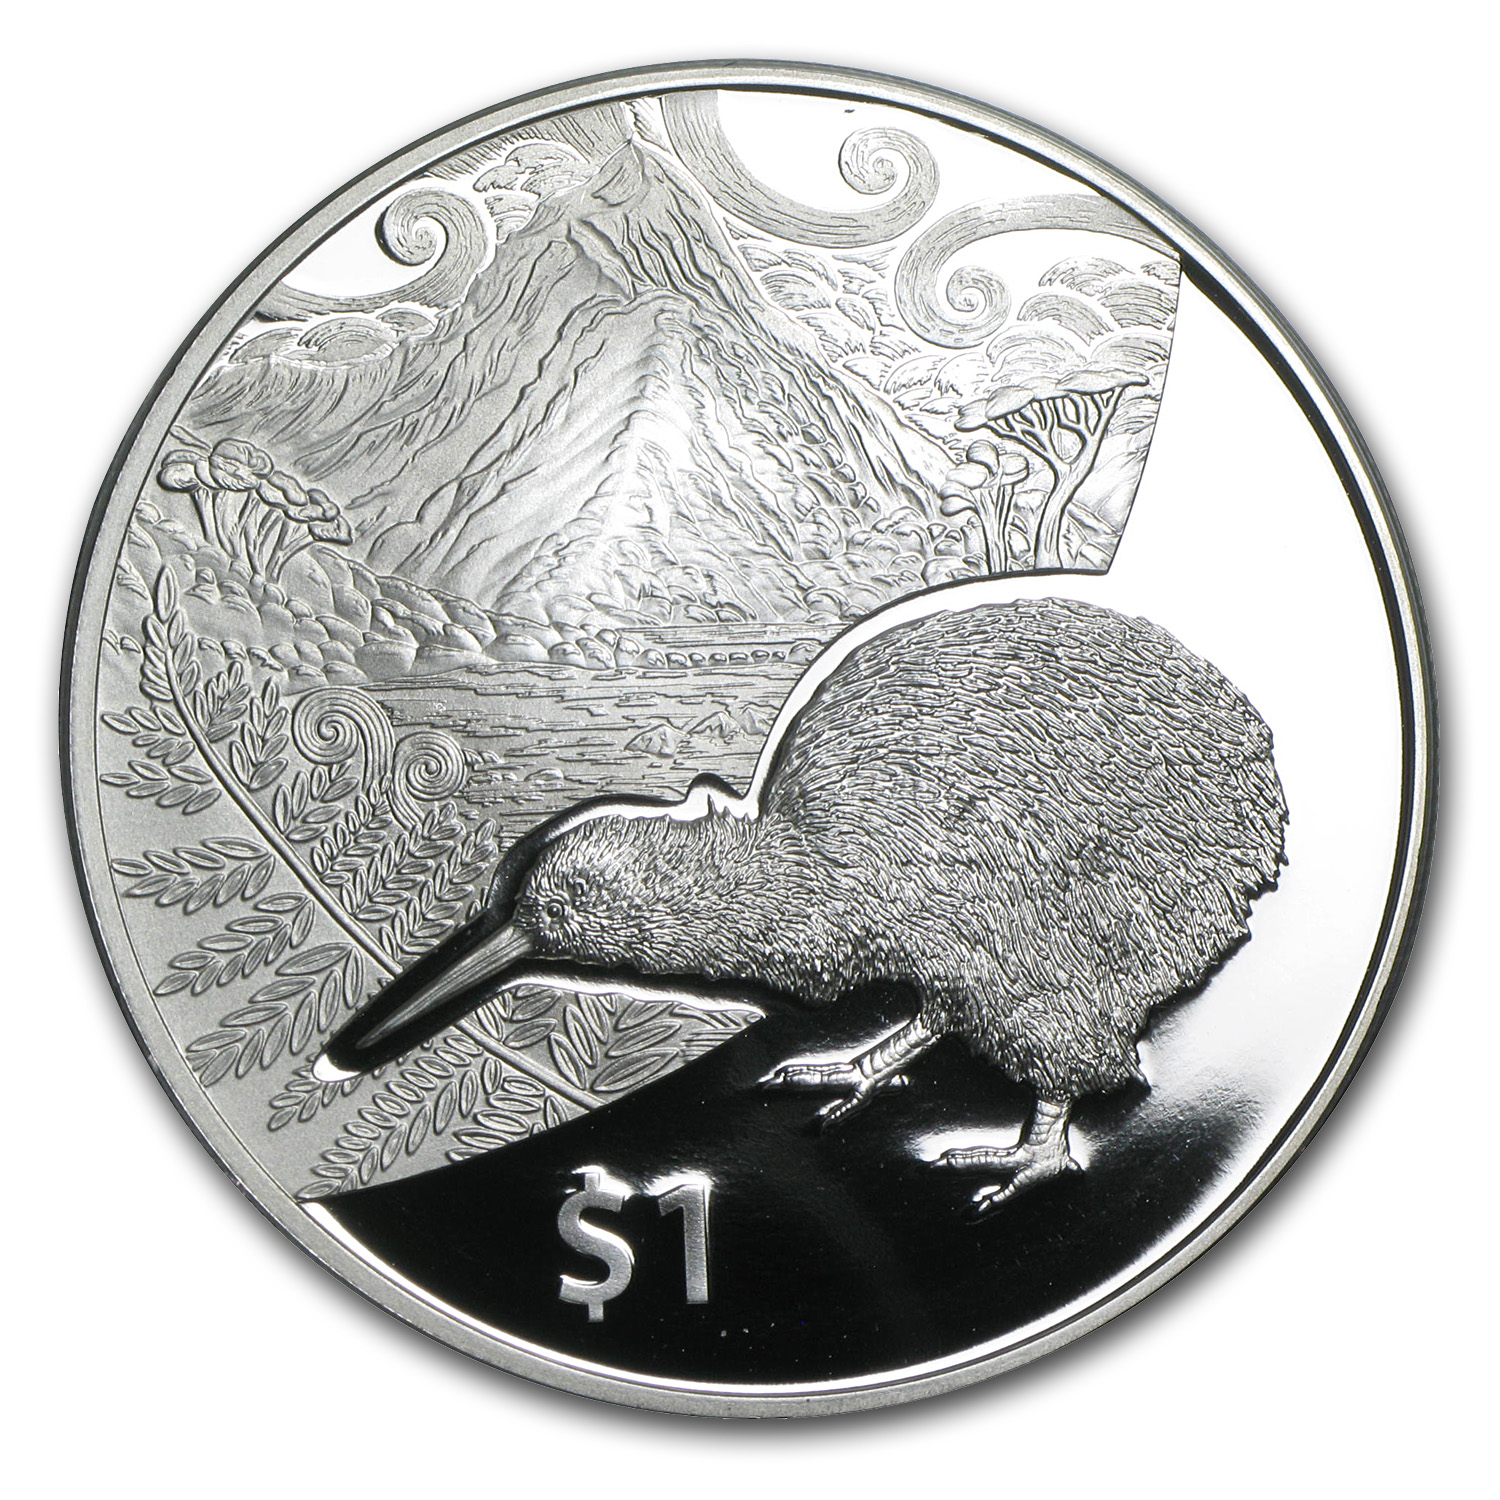 2014 1 oz Silver Proof New Zealand Treasures $1 Kiwi Coin